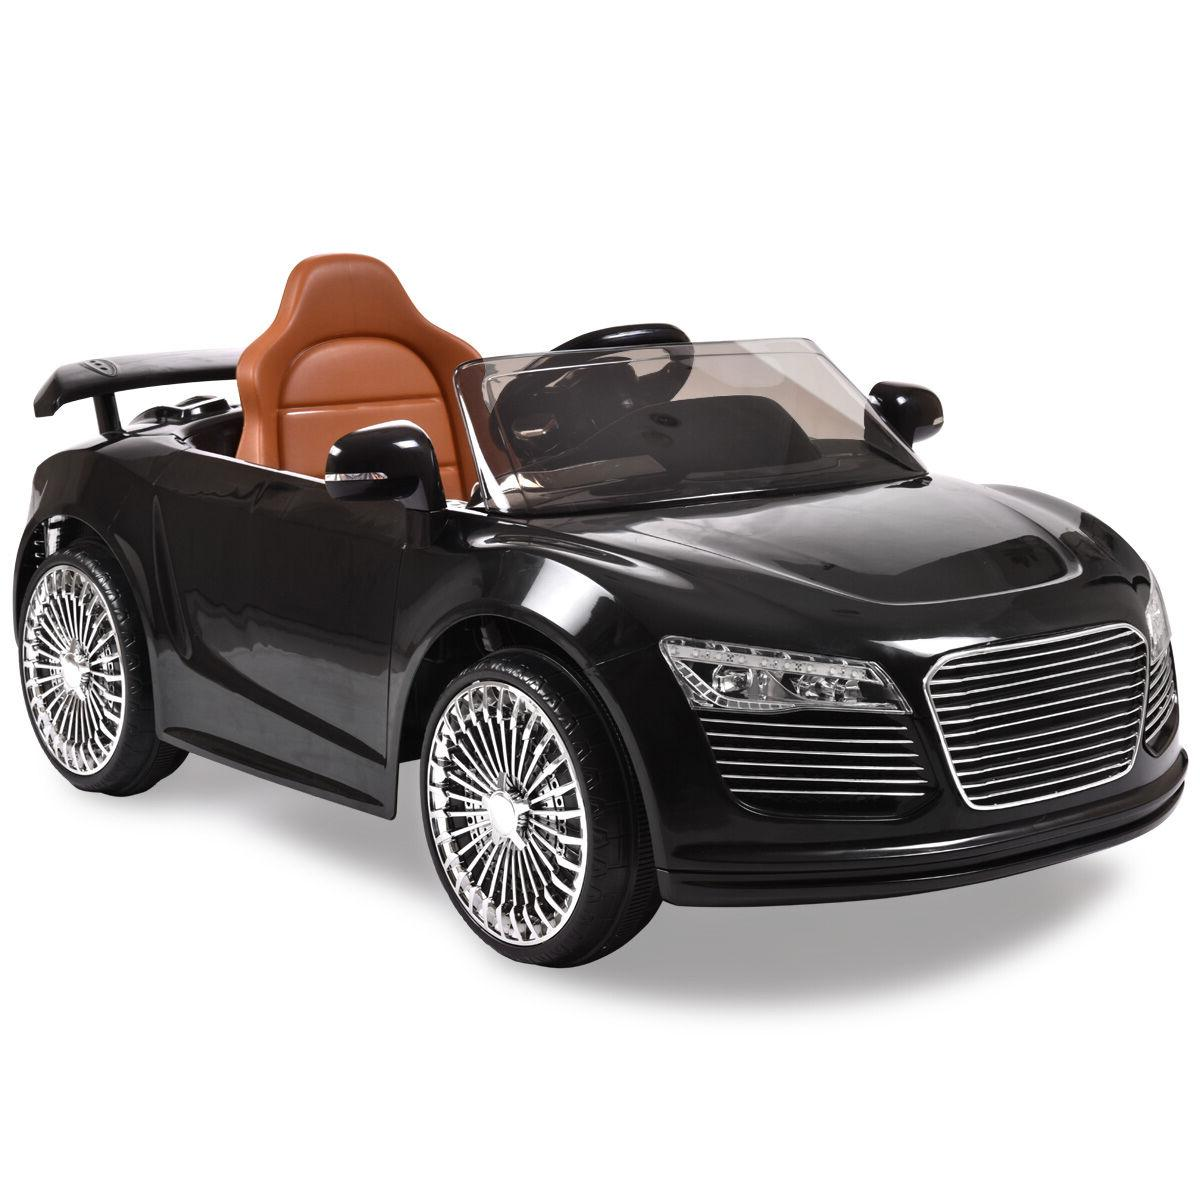 12V Ride on Car Kids RC Car Remote Control Electric Power Wh